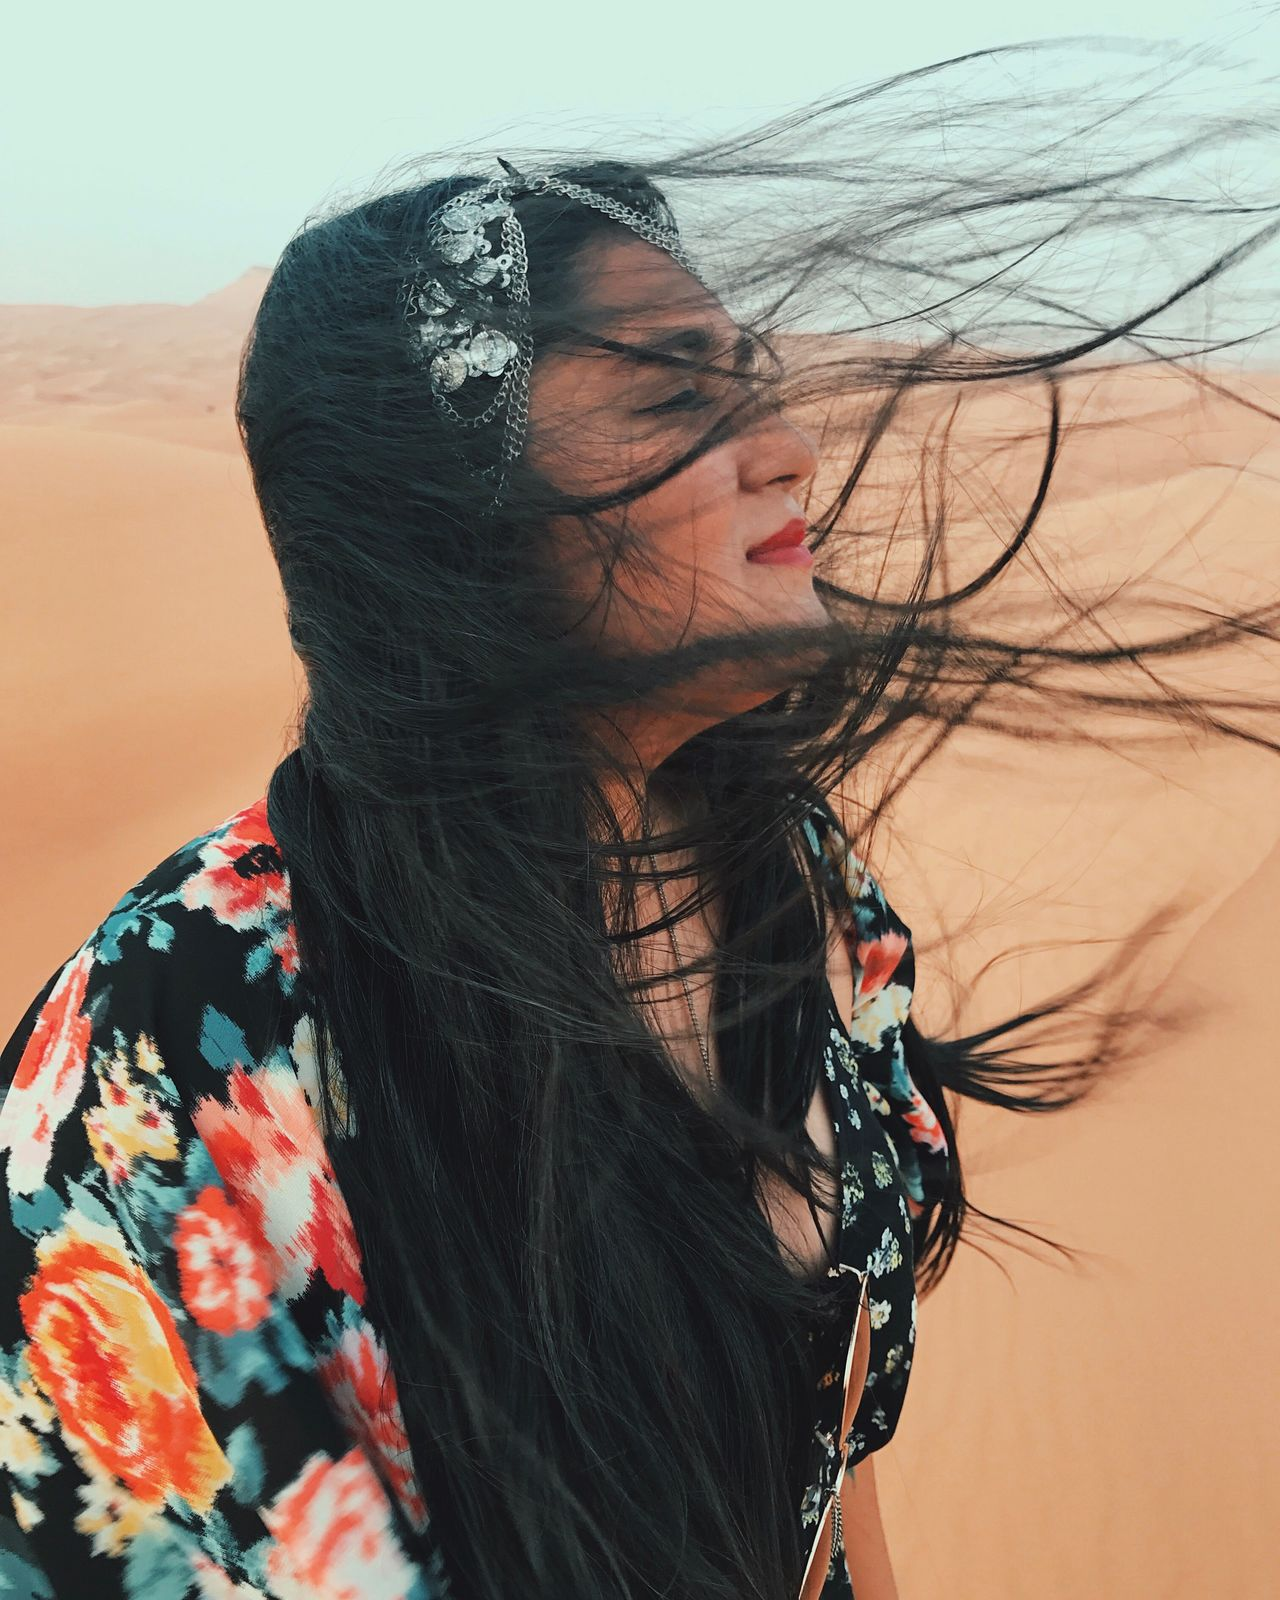 Blown away... One Person Leisure Activity Long Hair Real People Sand Young Women Young Adult Lifestyles Beautiful Woman Outdoors Day Beach Portrait Nature Beauty Sand Dune Sky Close-up Adult Adults Only